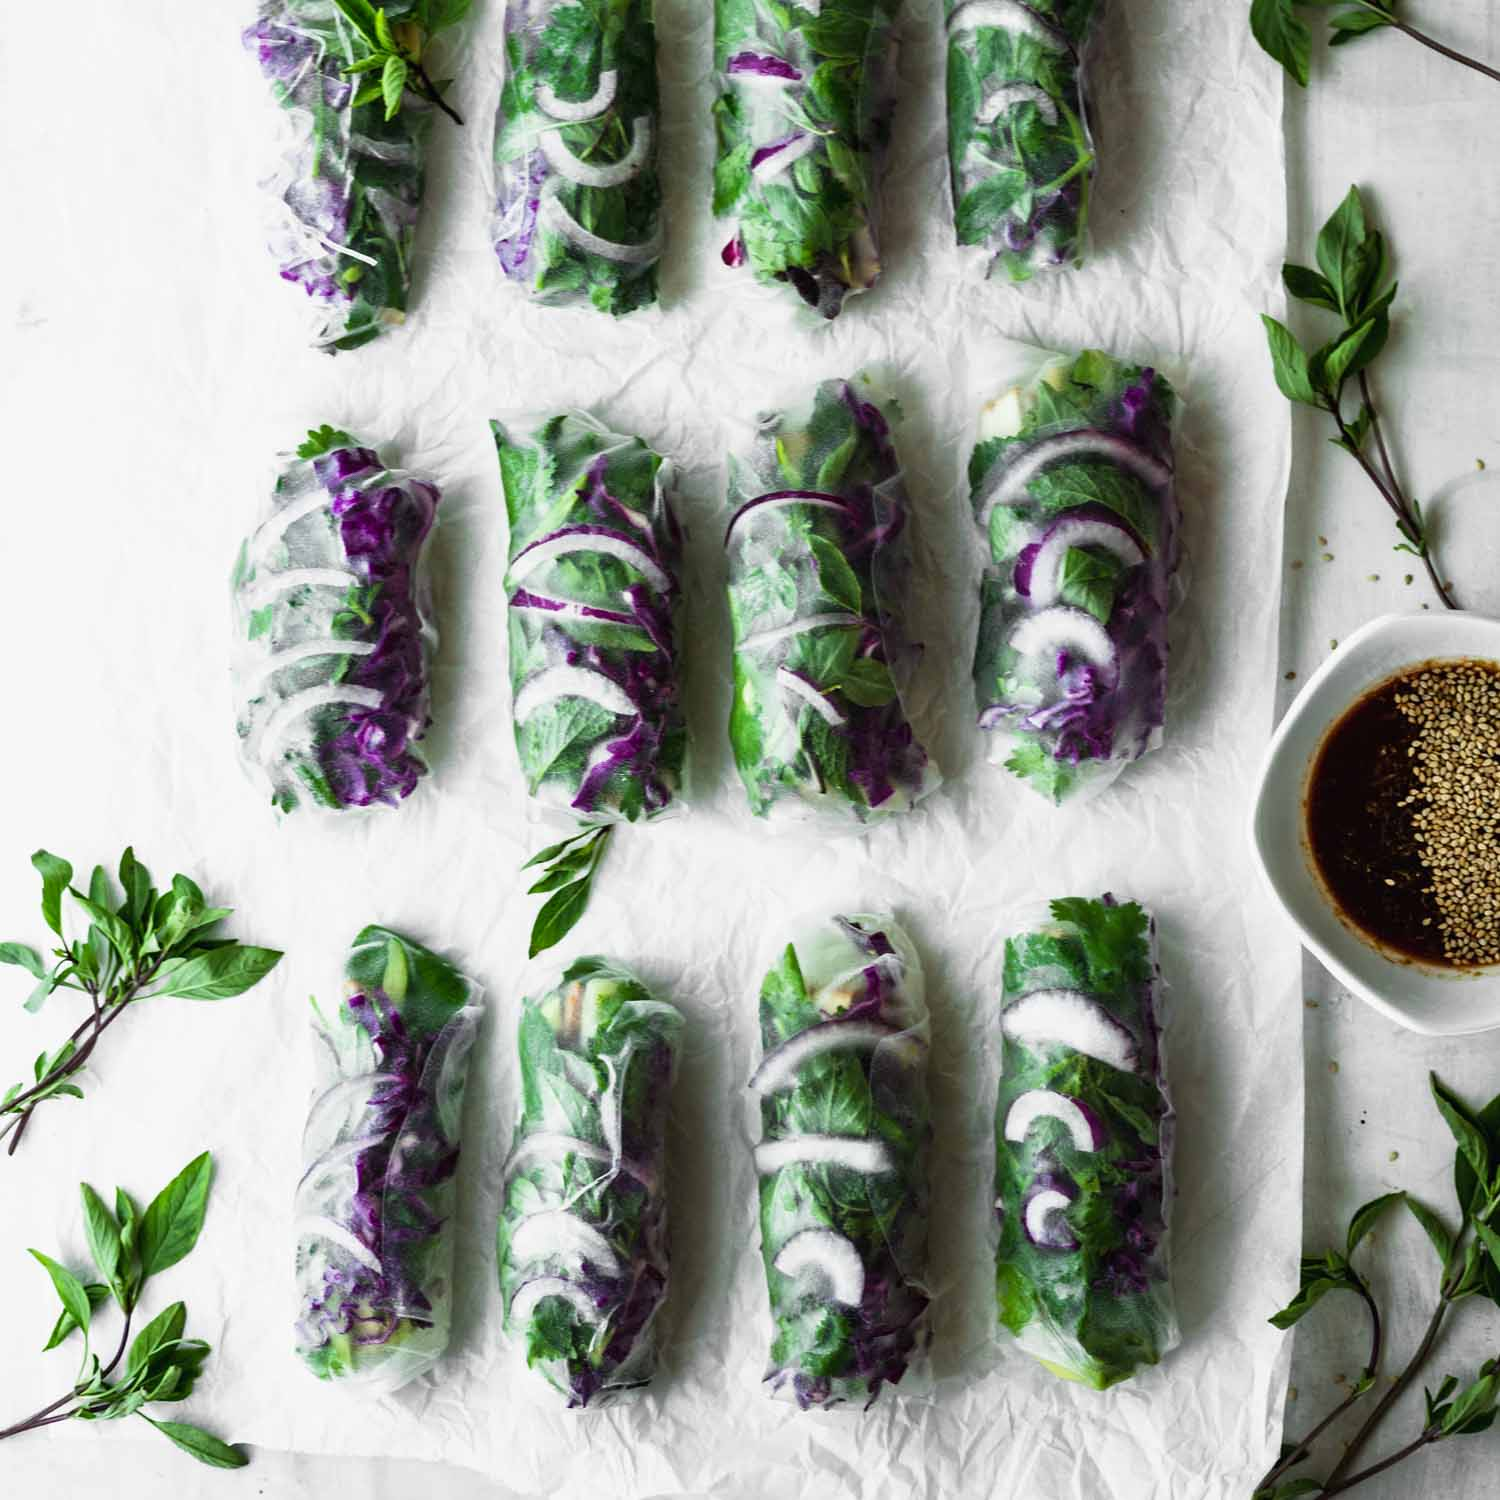 Easy Green & Purple Summer Rolls with Quick Dipping Sauce by Kari | Beautiful Ingredient